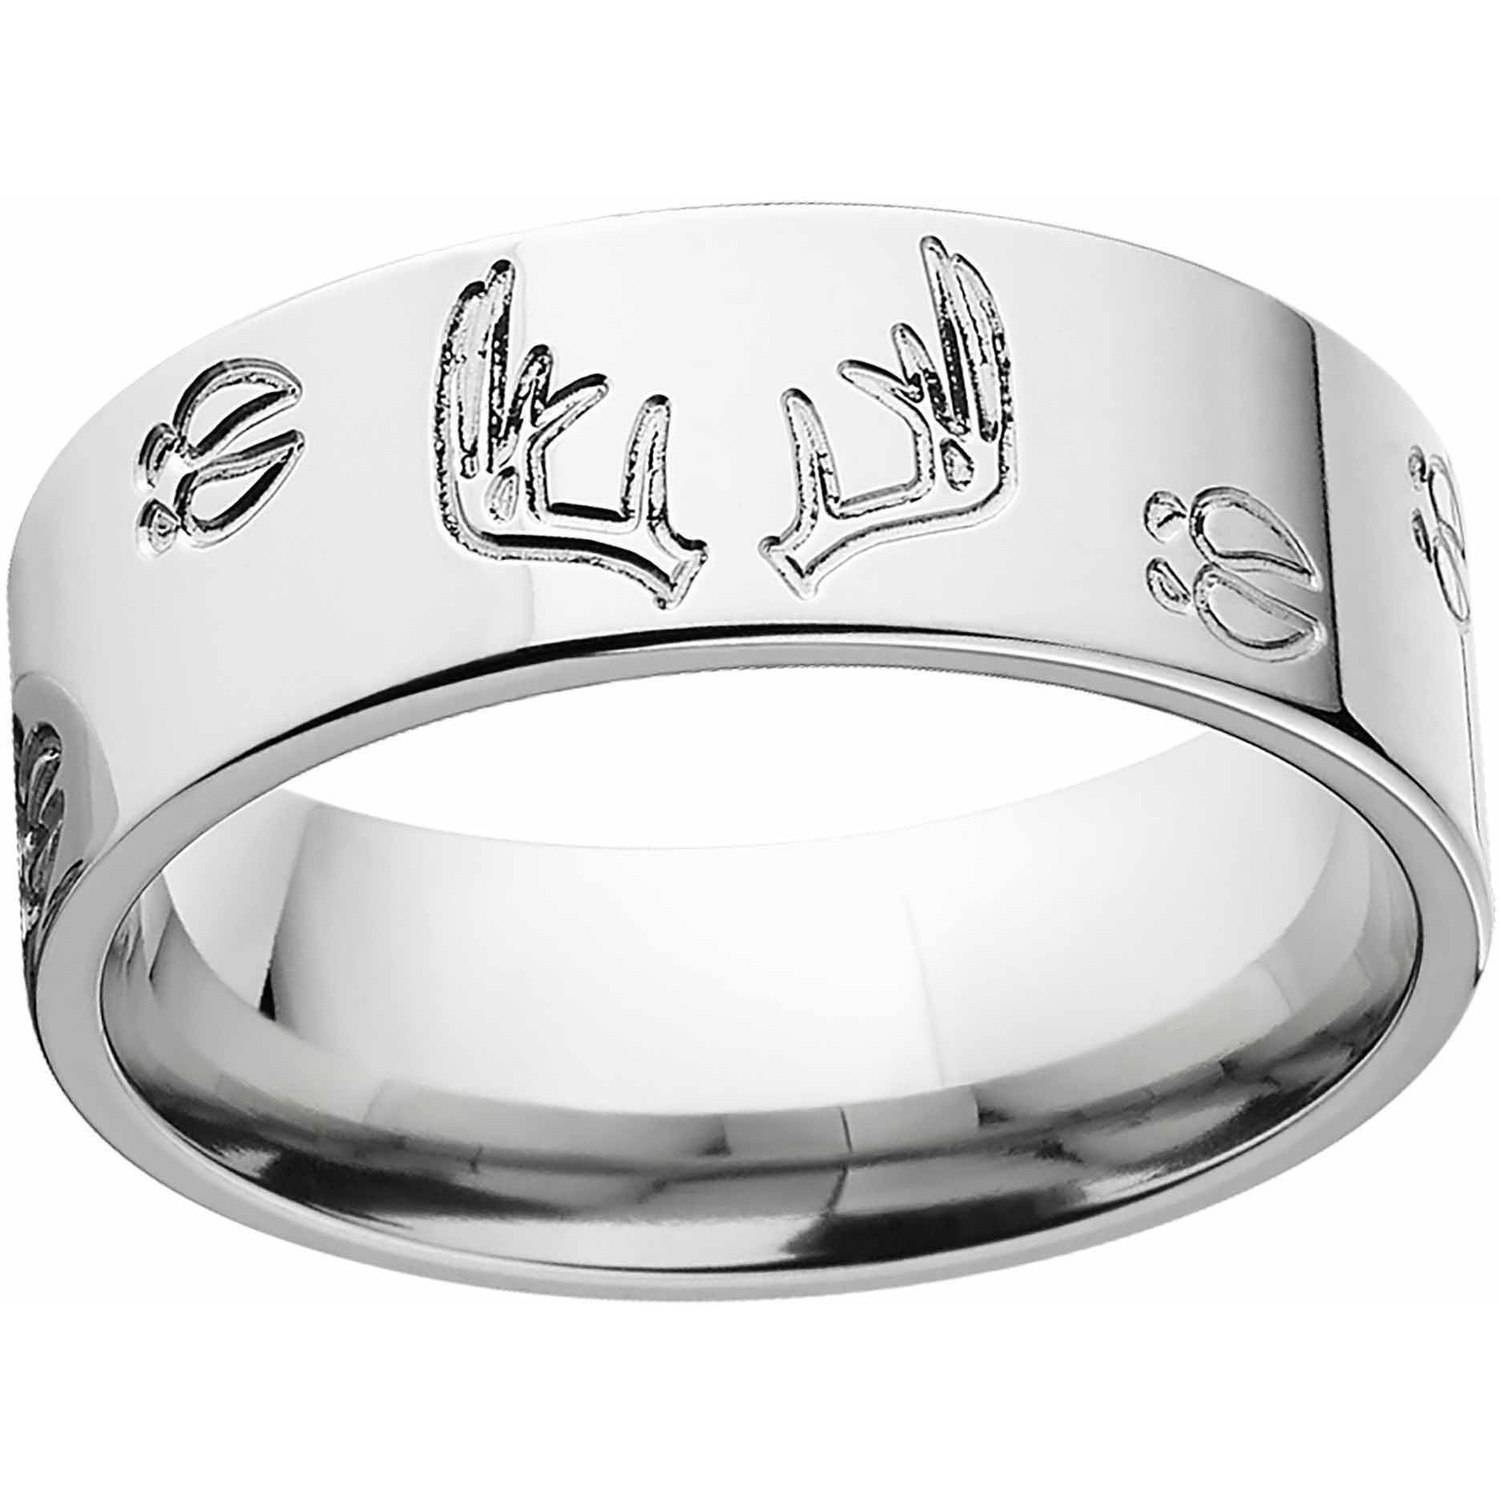 15 ideas of walmart jewelry men 39 s wedding bands for Do pawn shops buy stainless steel jewelry